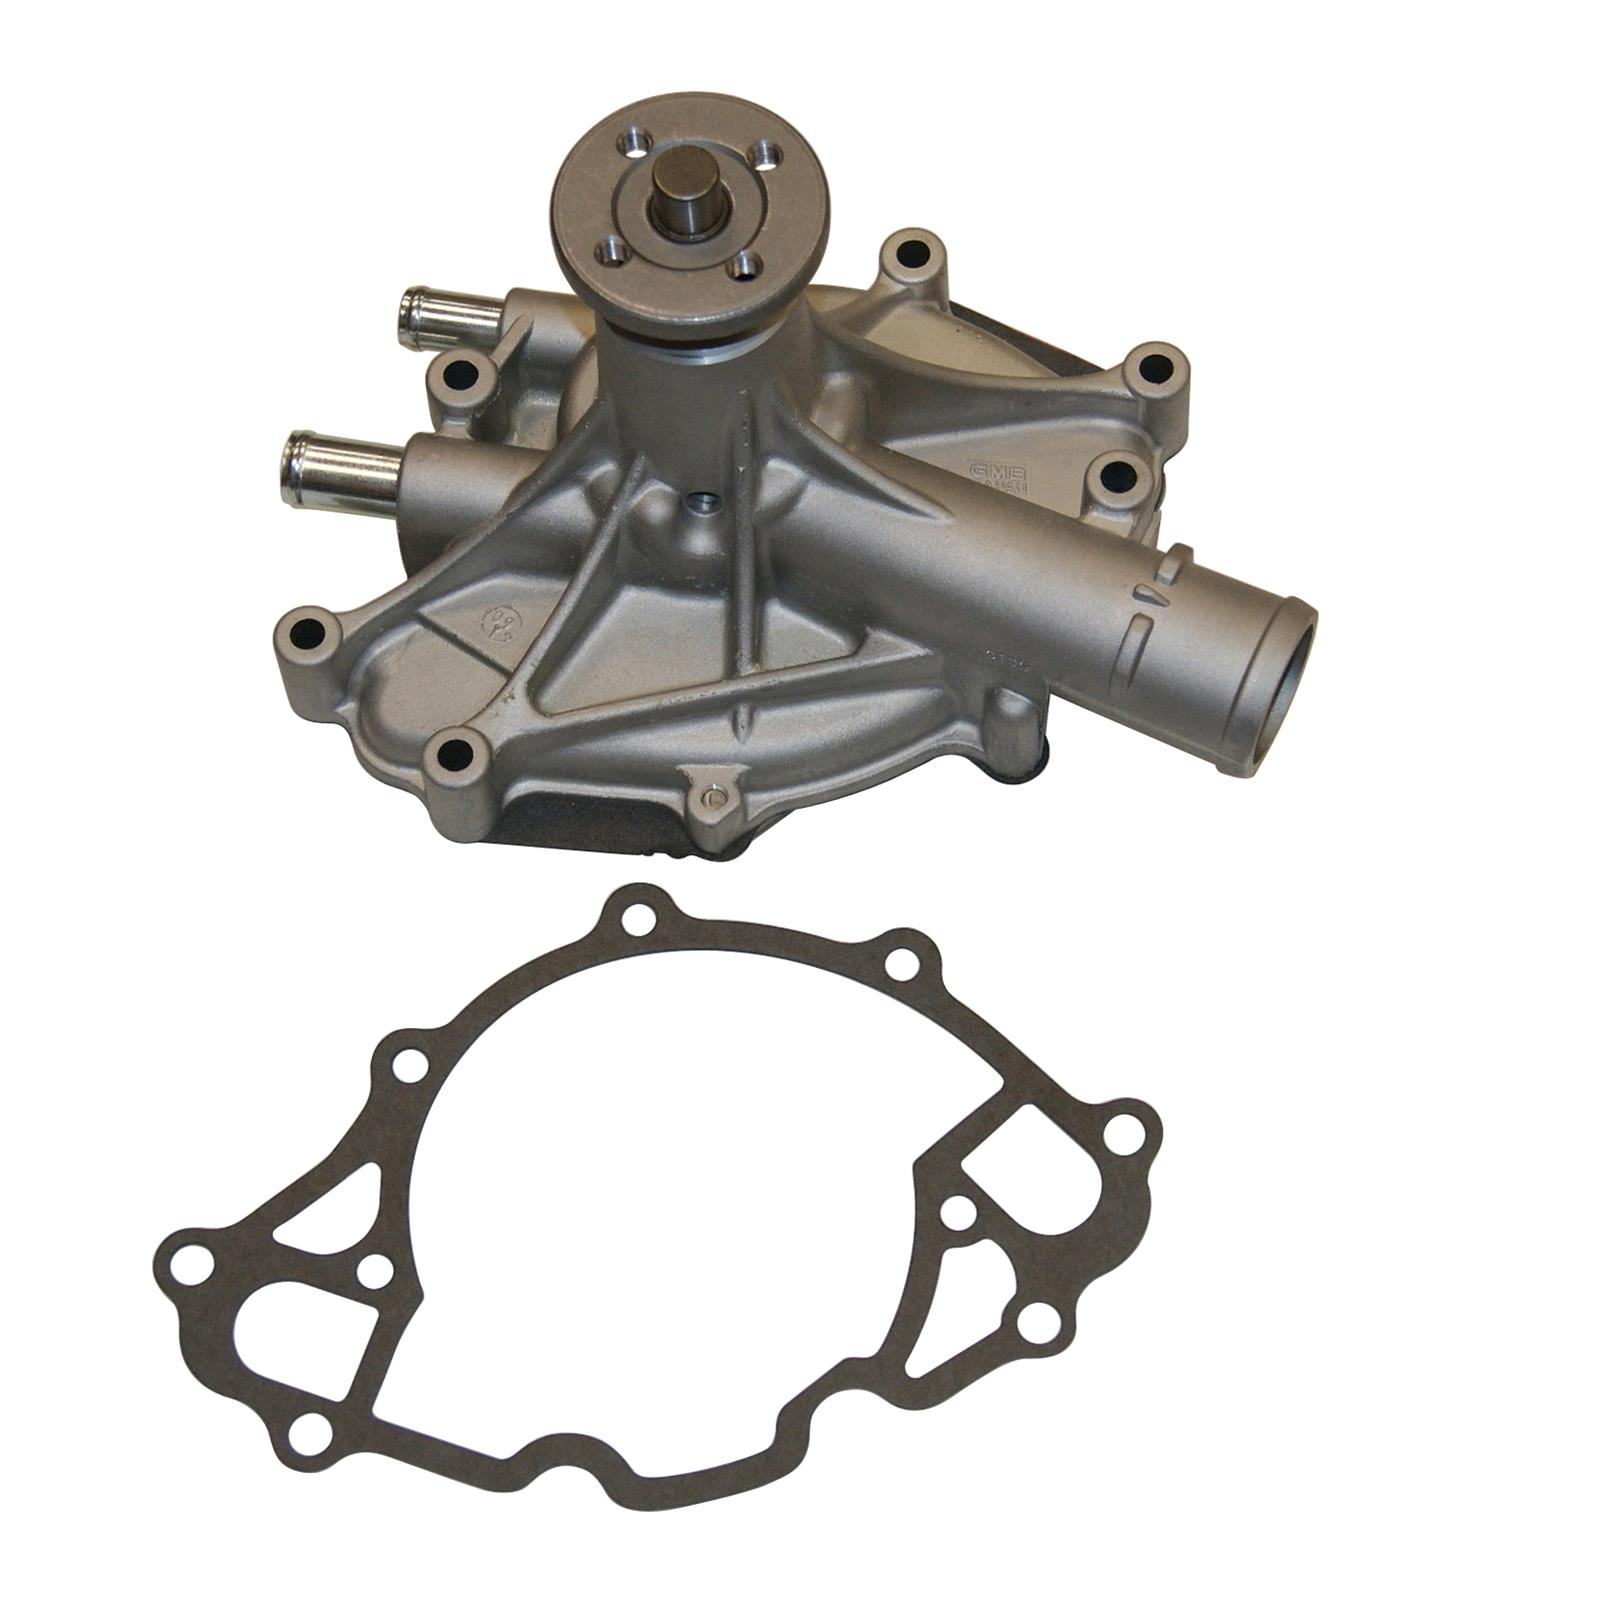 hight resolution of details about gmb water pump 125 1700 ford sb 289 302 351w standard volume